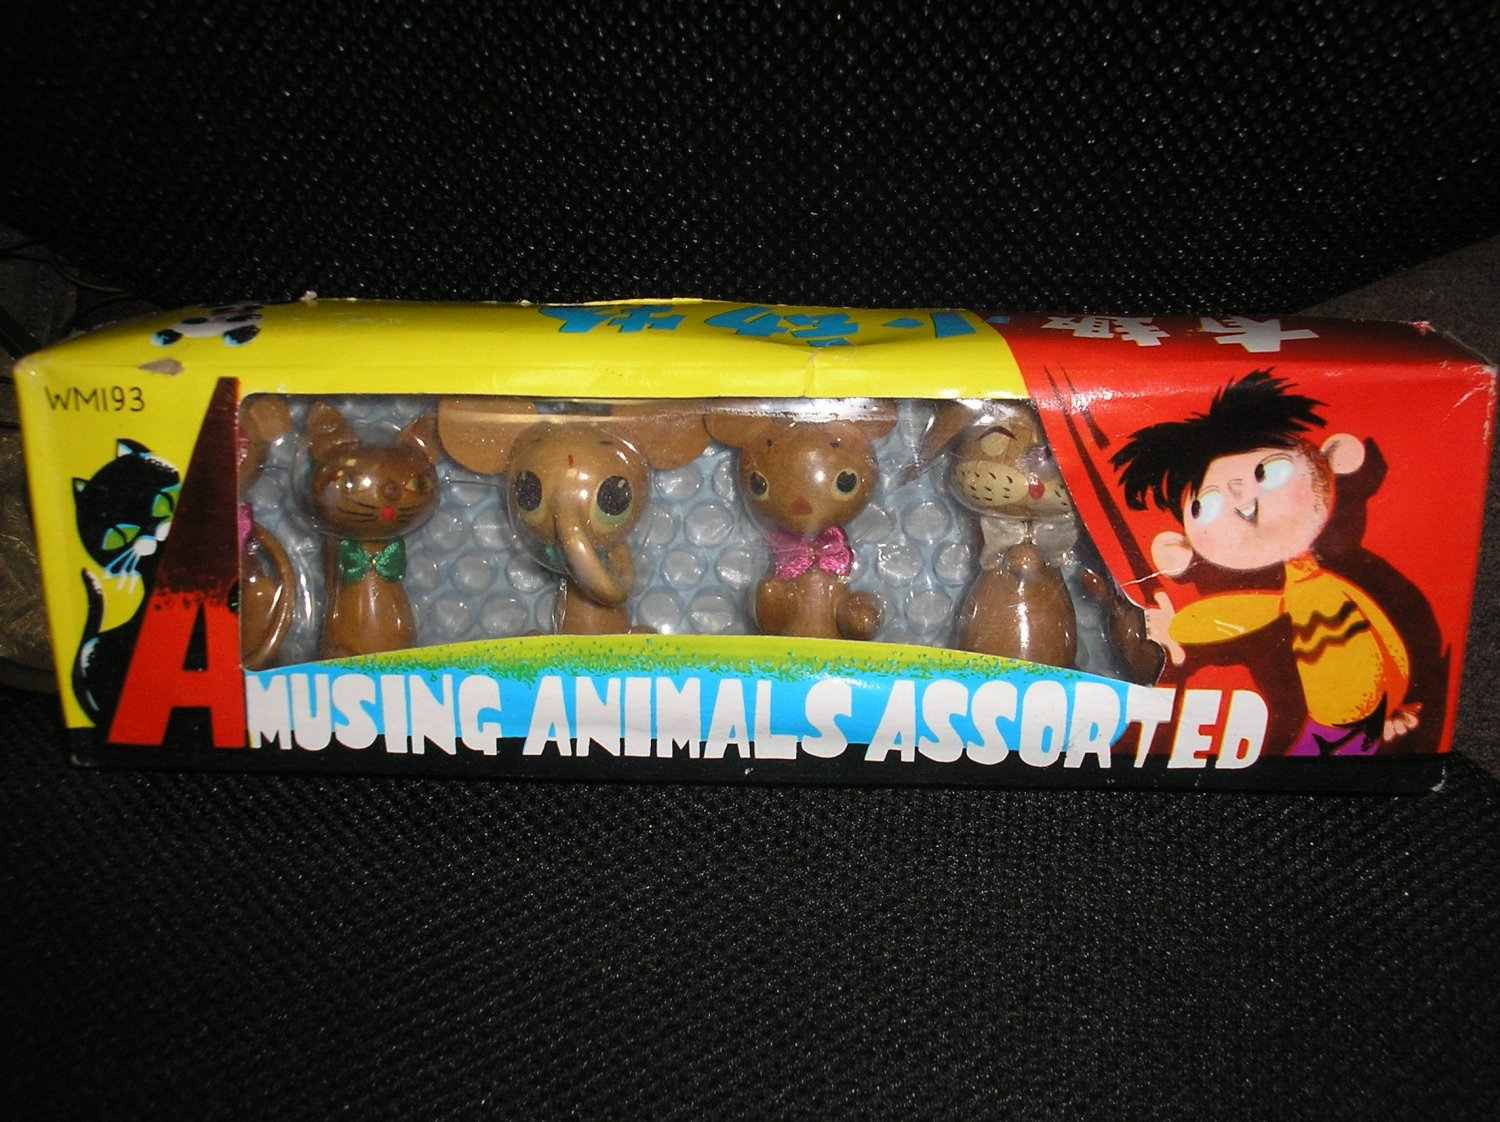 """VINTAGE WOODEN """"AMUSING ANIMALS ASSORTED"""" from CHINA in ORIGINAL BOX - #WM193!"""